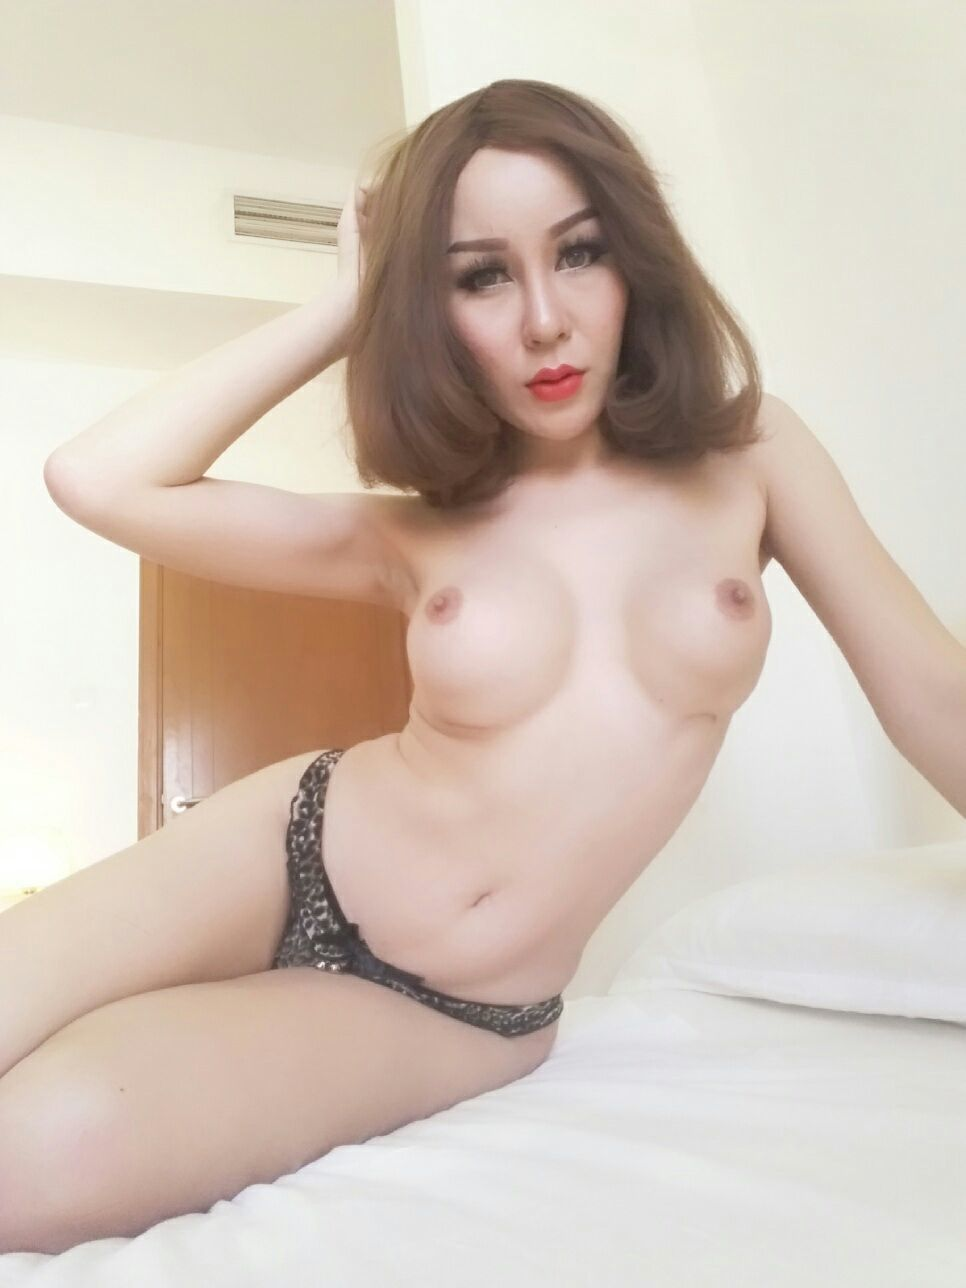 shemale escort oslo thai massasje oslo happy